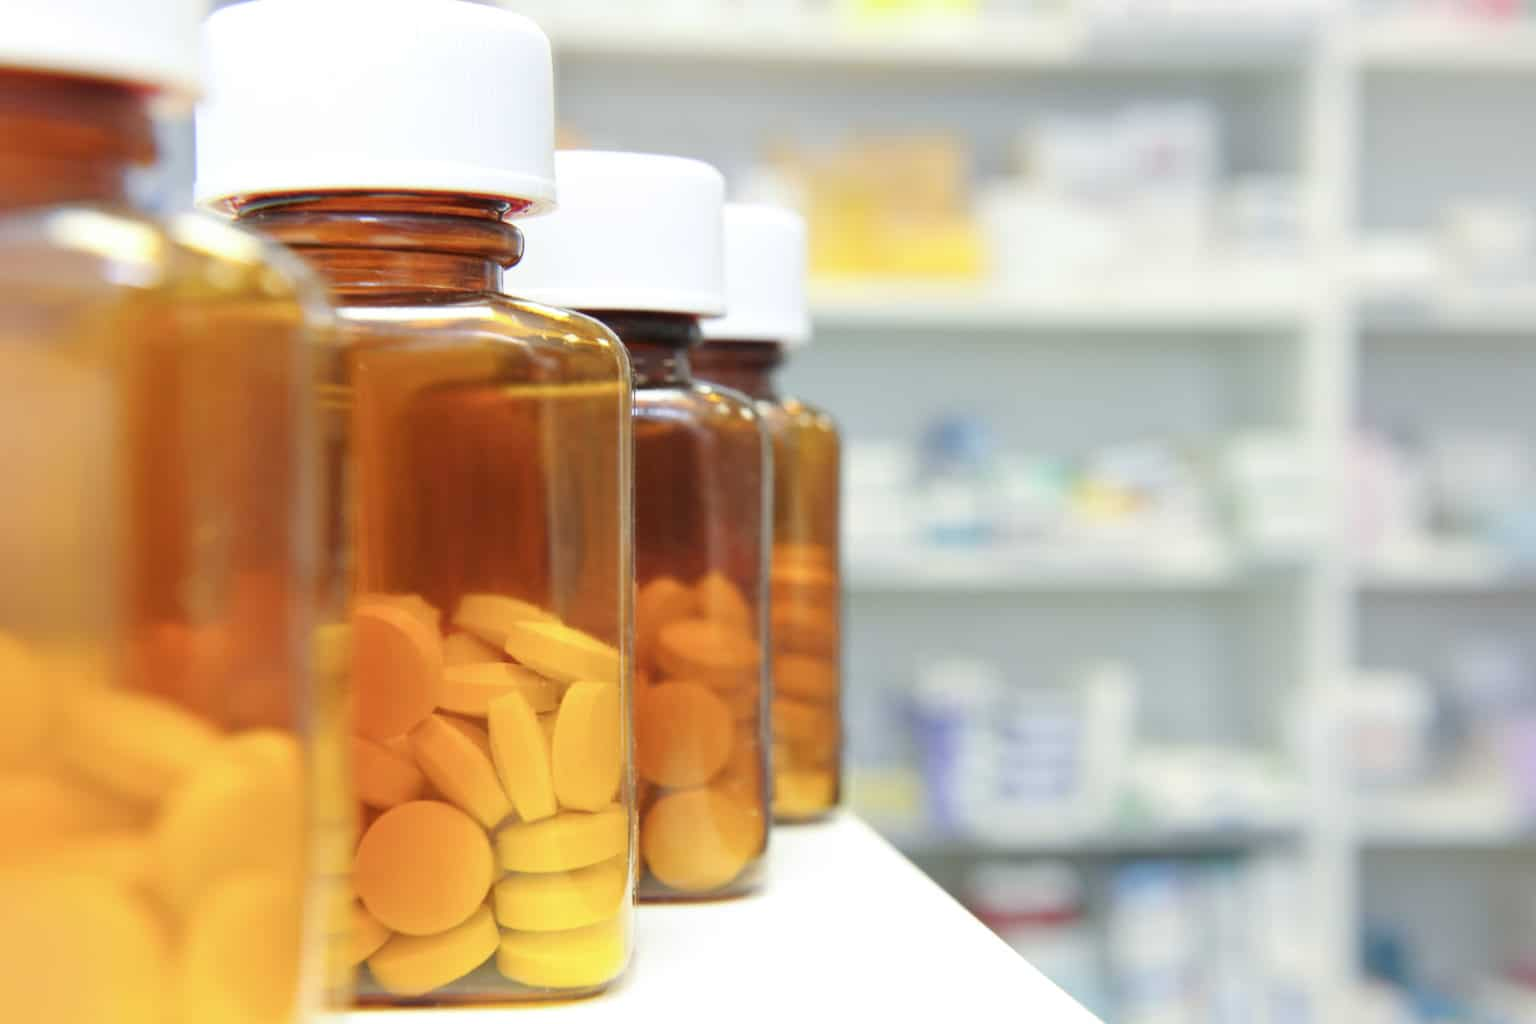 Repurposing old drugs like Ketamine can save time and money